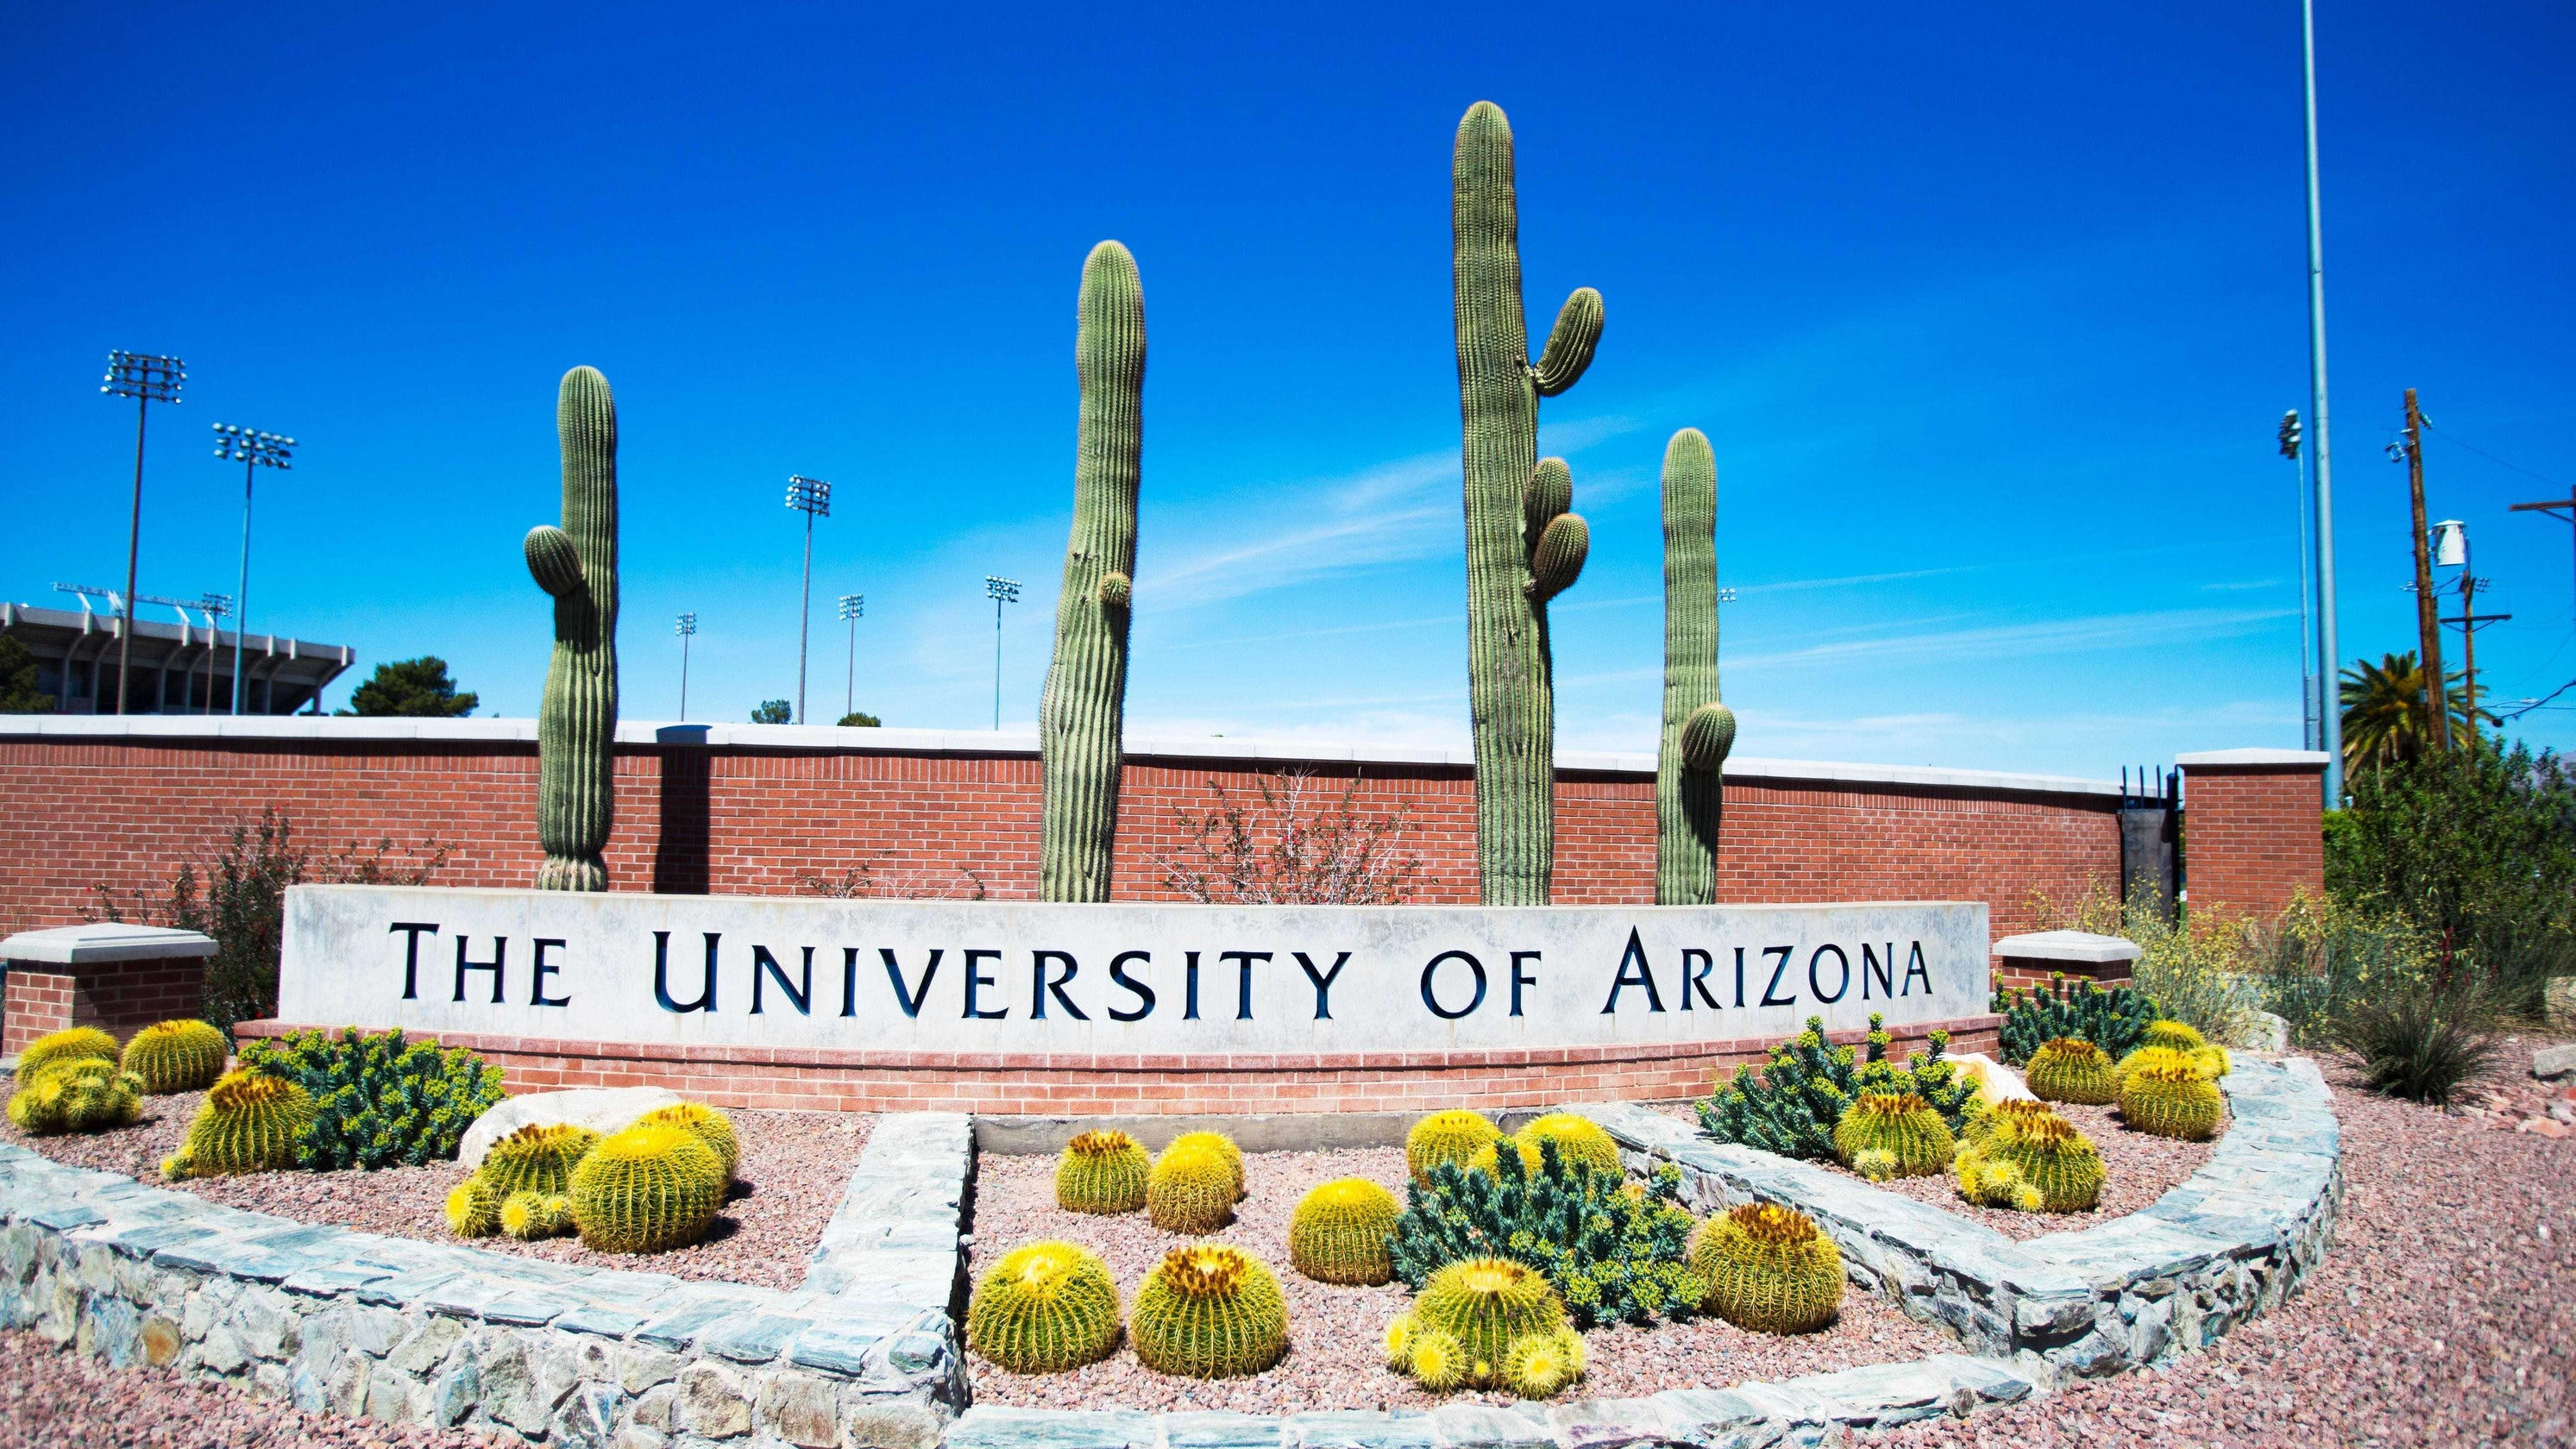 University of Arizona again delays planned furloughs for 15,000 employees